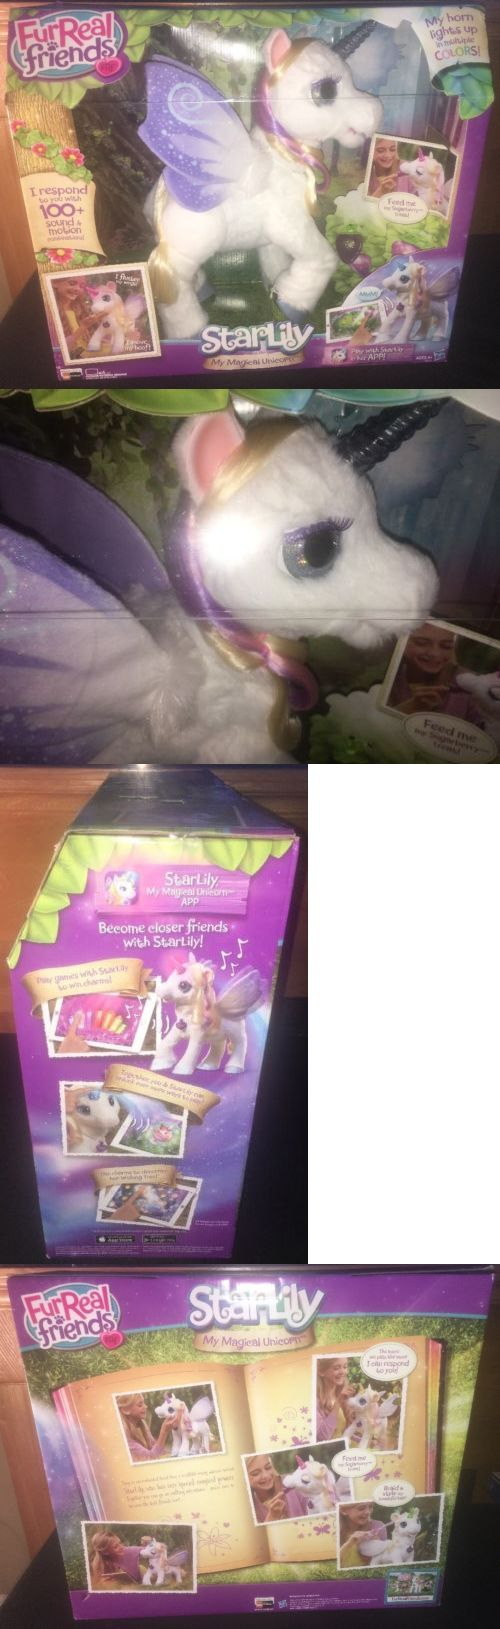 FurReal Friends 38288: Furreal Friends My Magical Unicorn Starlily Interactive Star Lily -> BUY IT NOW ONLY: $119.99 on eBay!